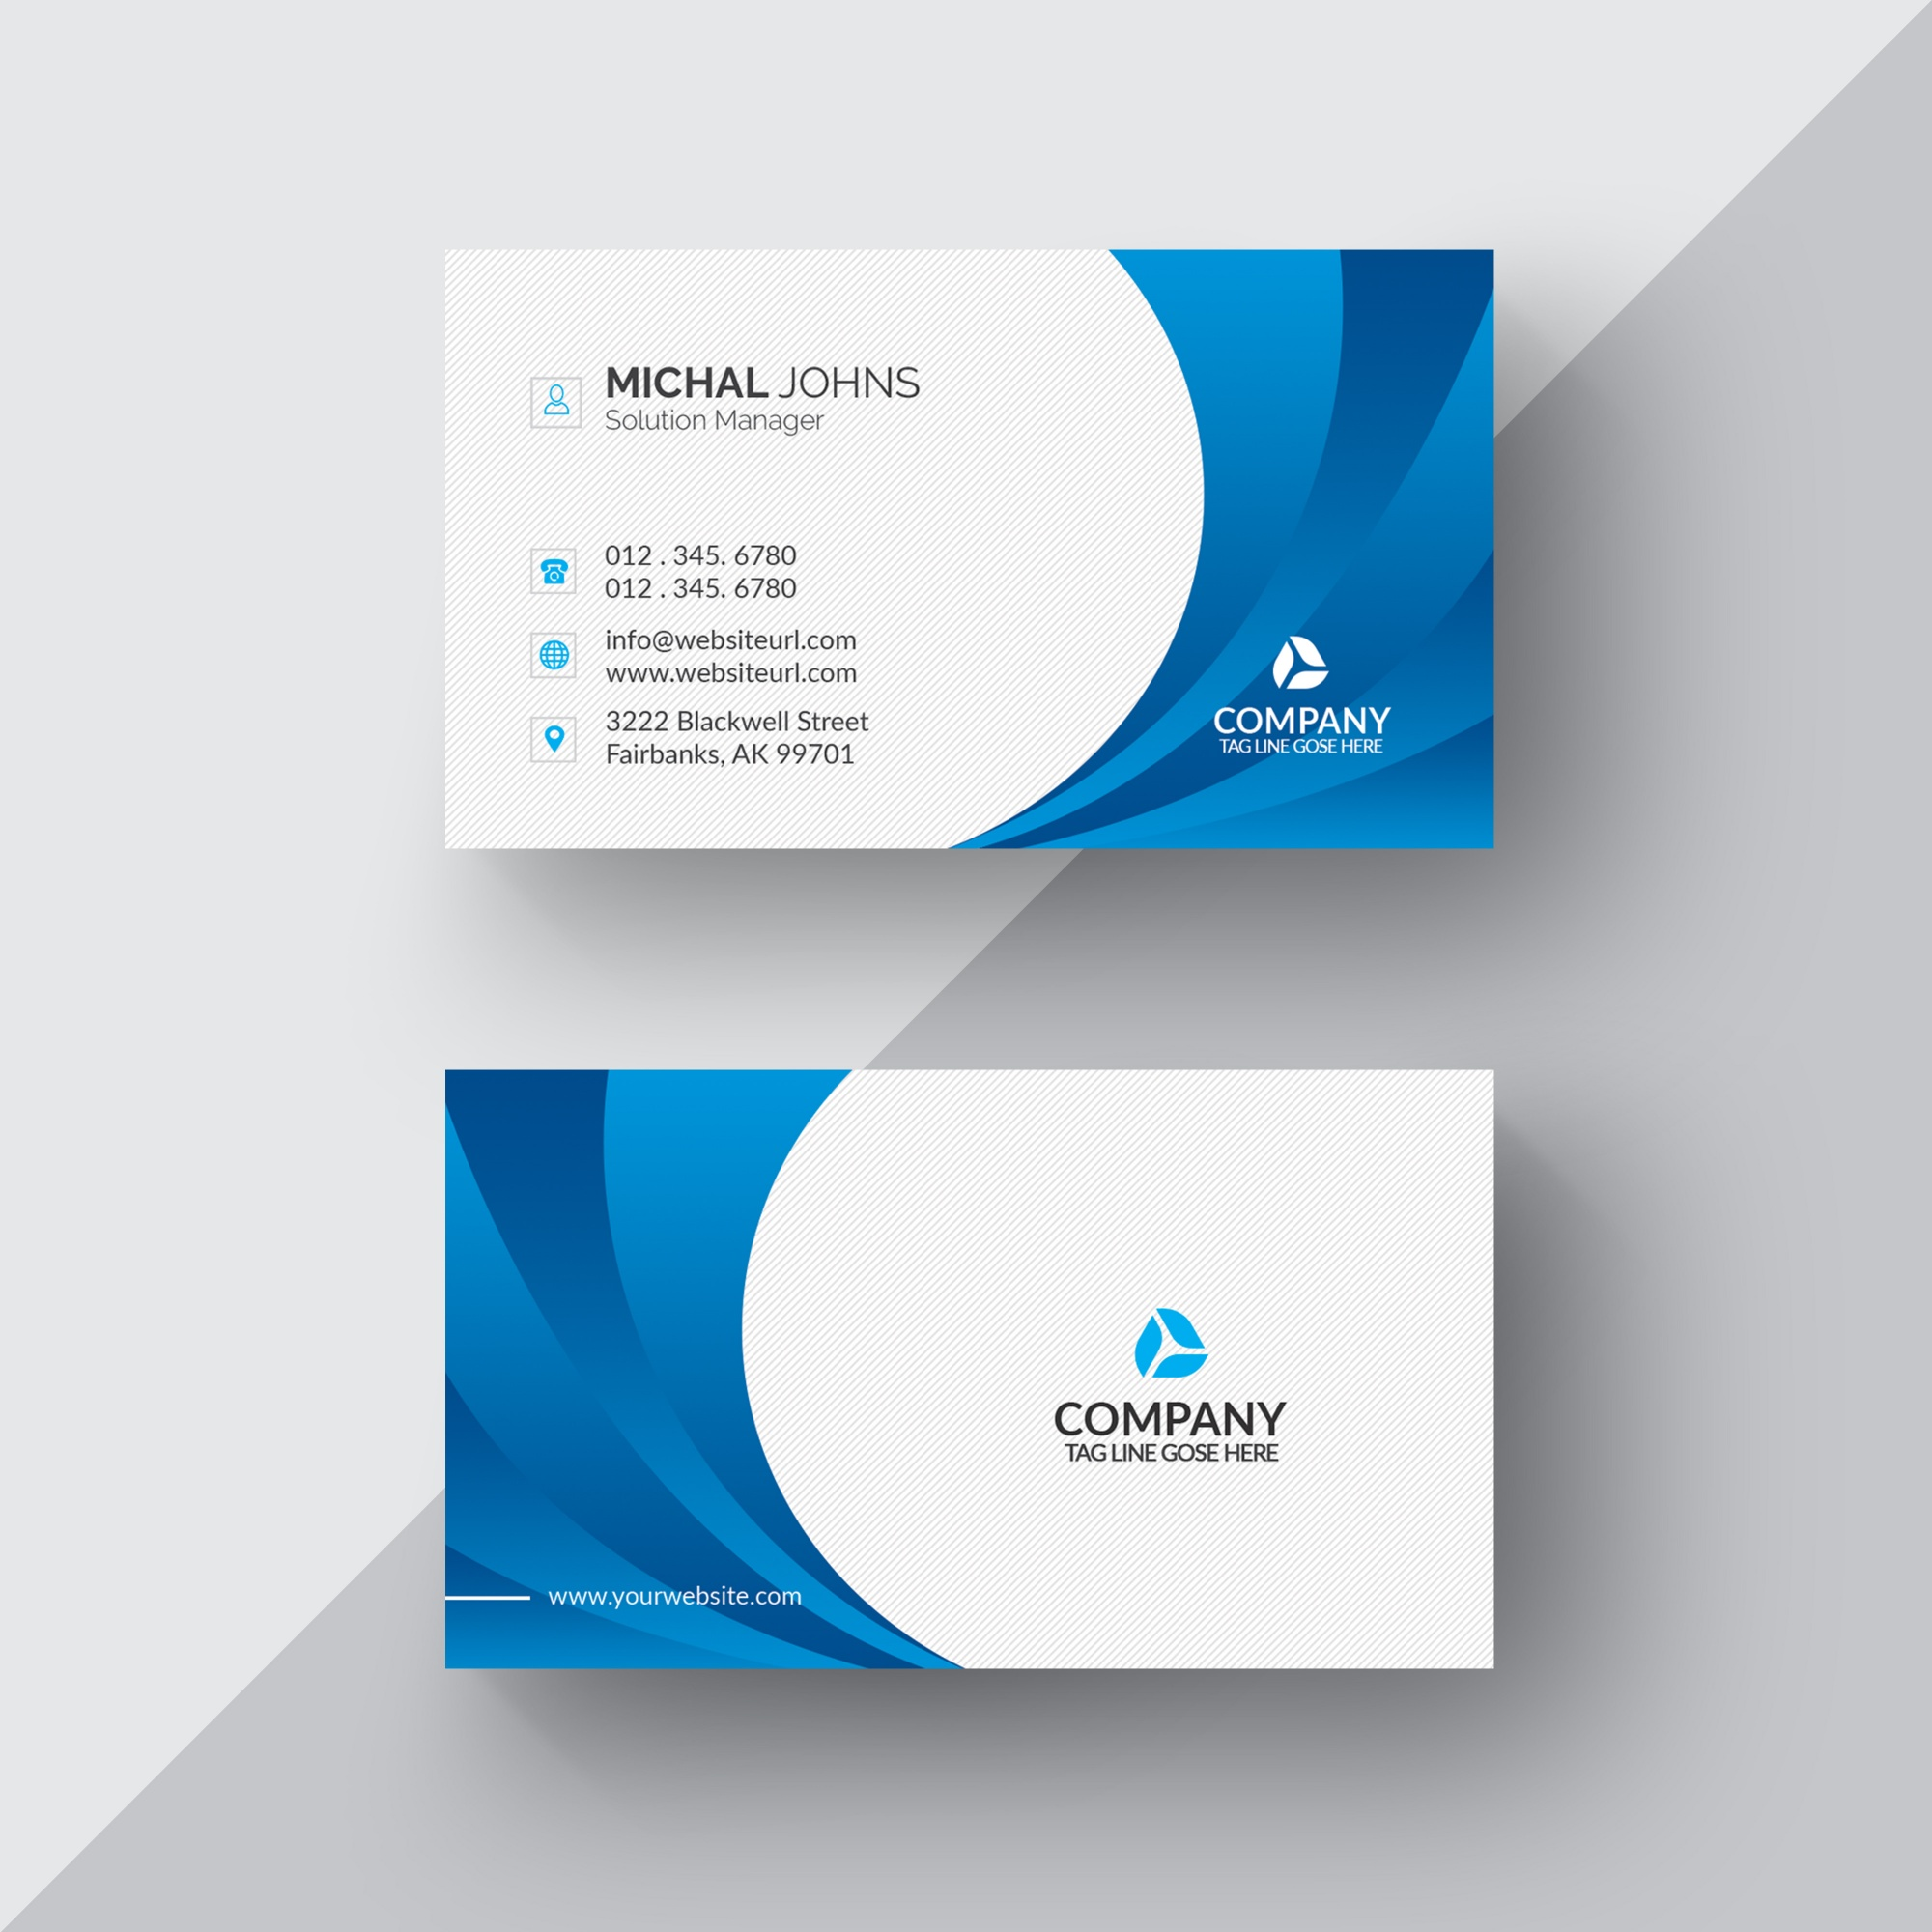 Blue and white business card